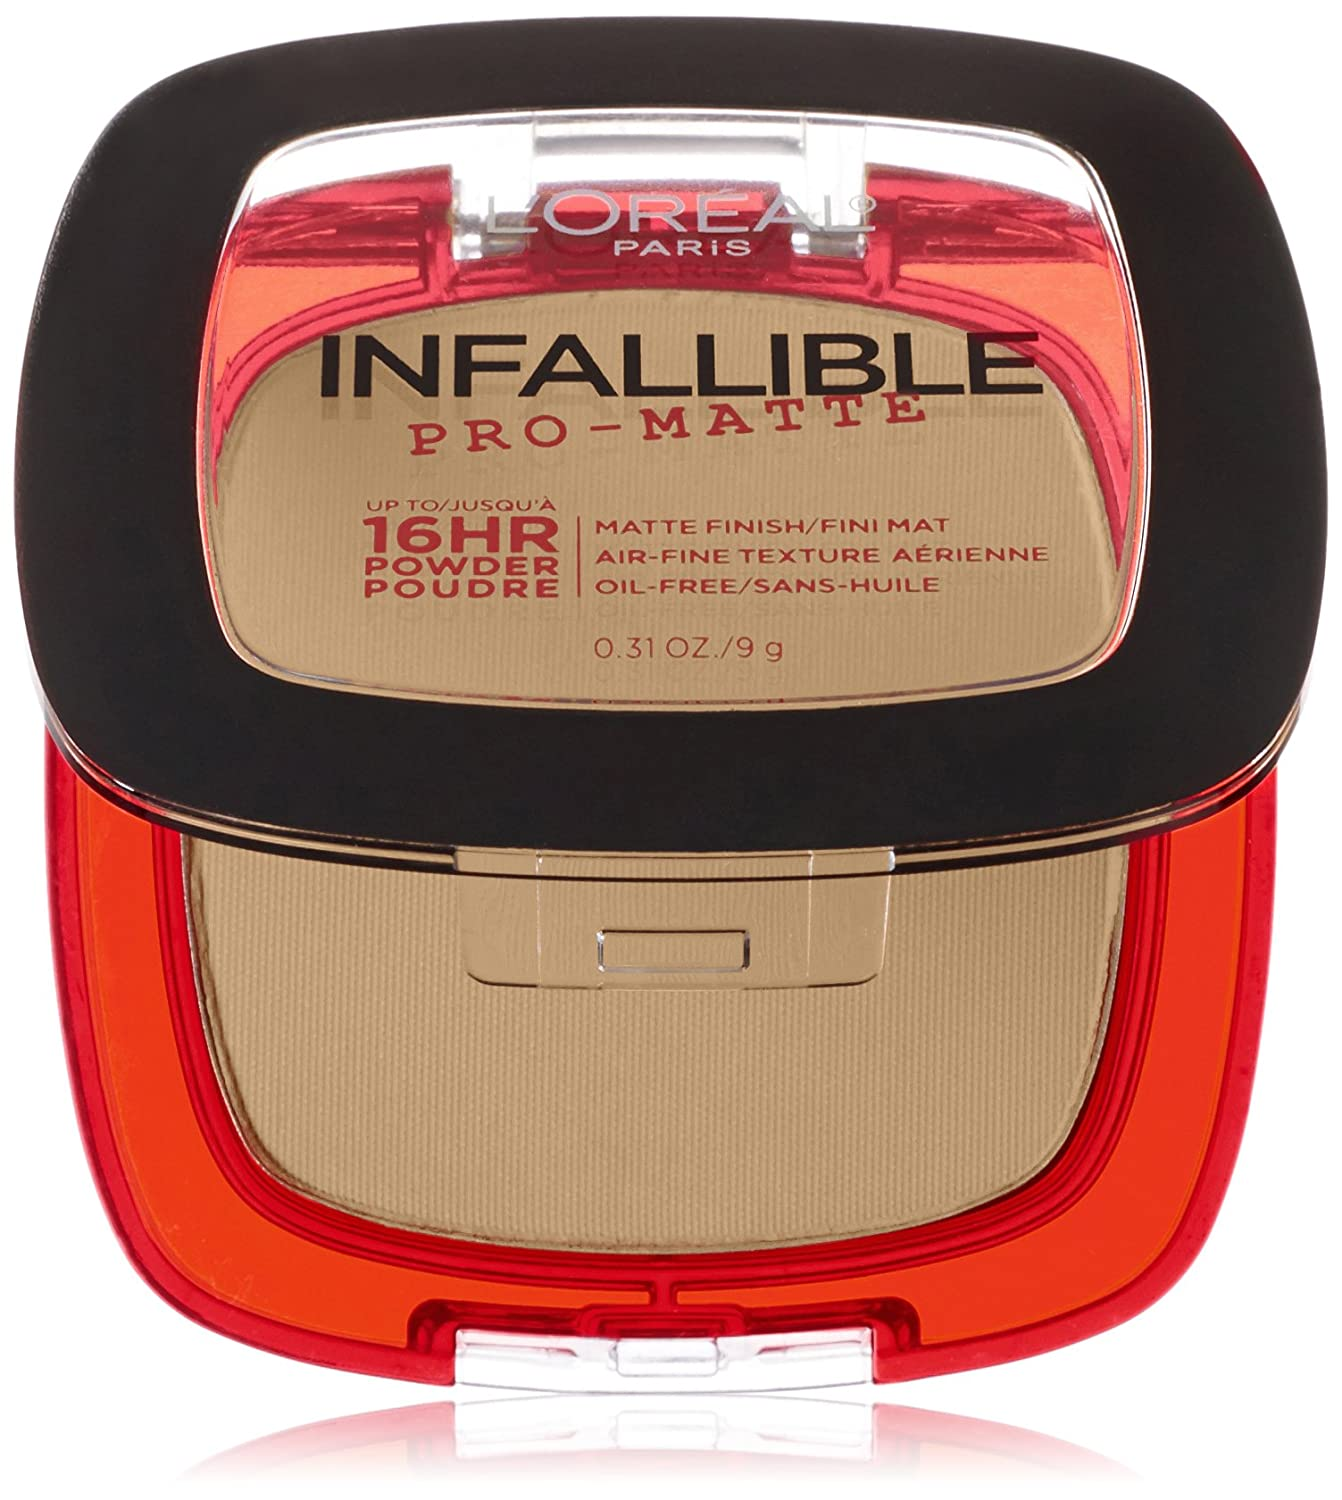 L'Oreal Paris Cosmetics Infallible Pro-Matte Powder, Sun Beige, 0.31 Ounce L'Oreal Paris K1831500